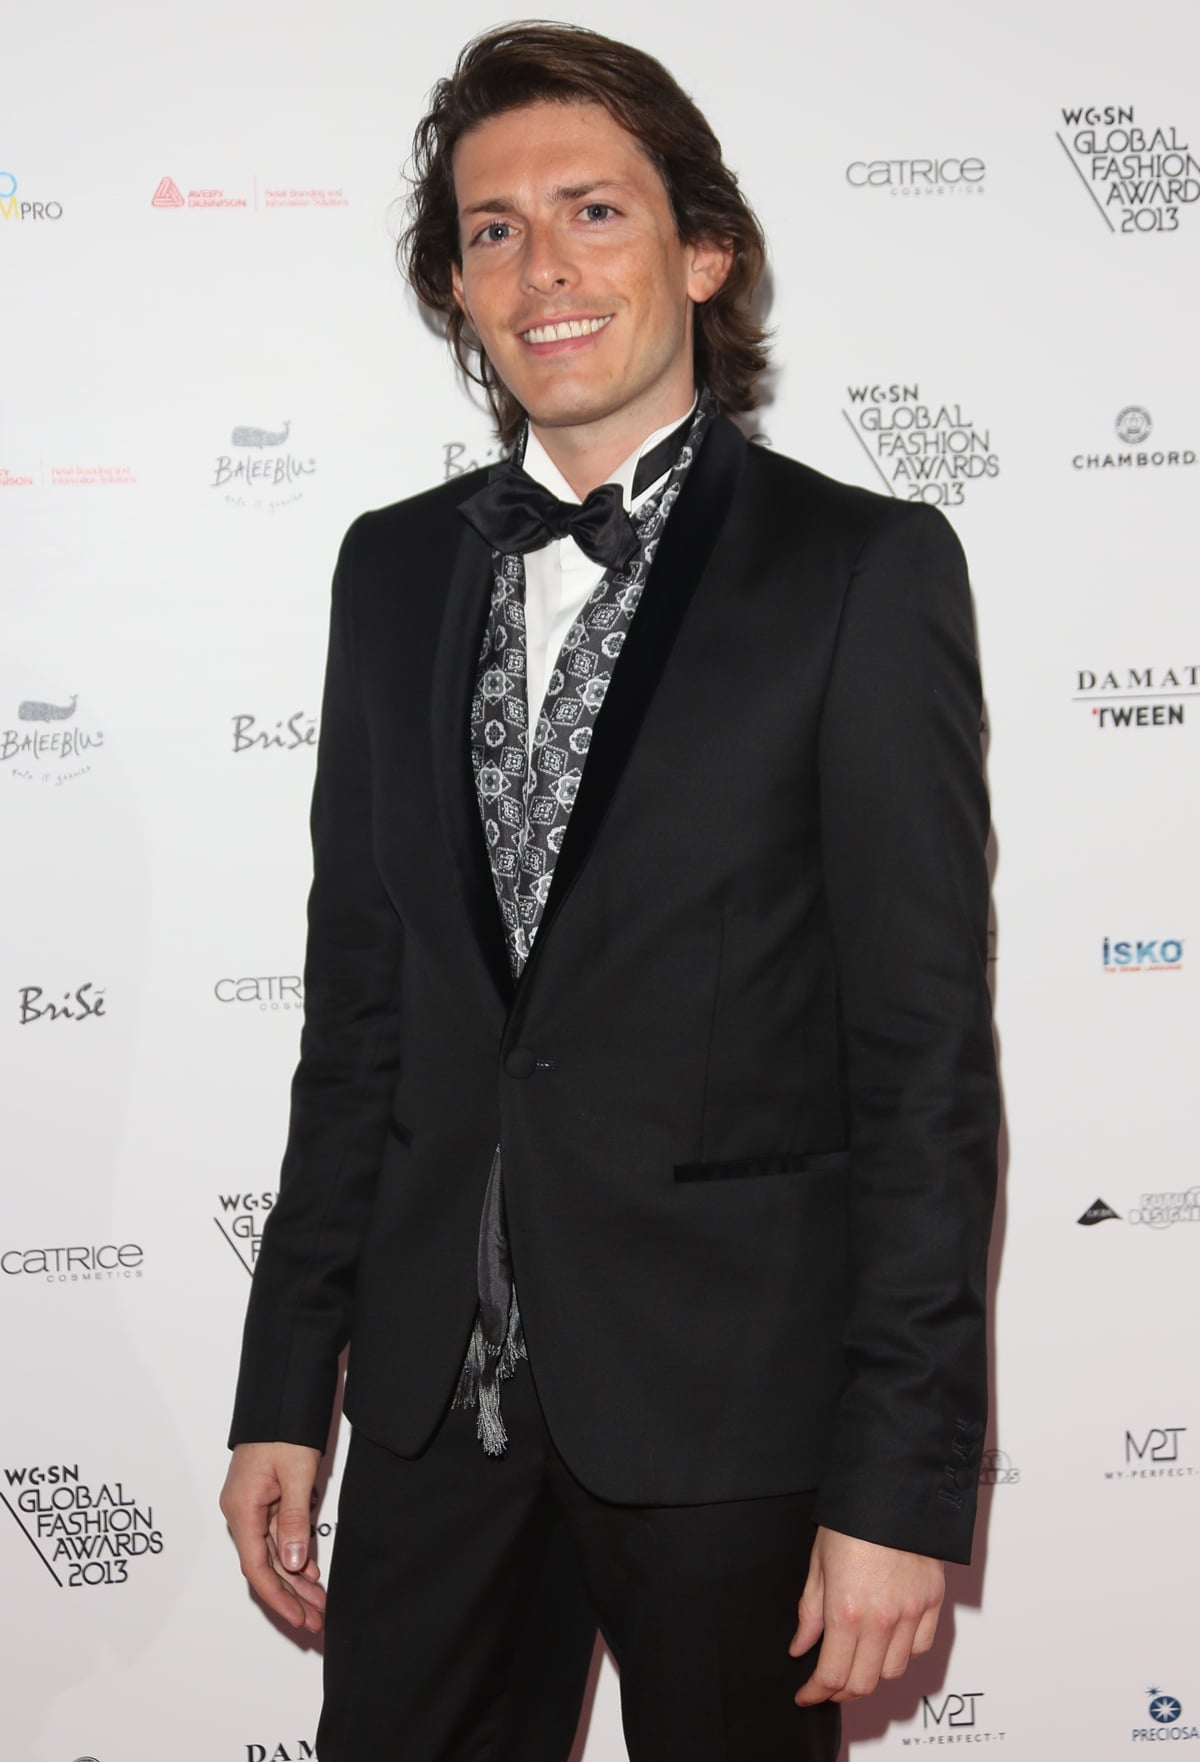 Edgardo Osorio arrives at The WGSN Global Fashion Awards at the Victoria & Albert Museum